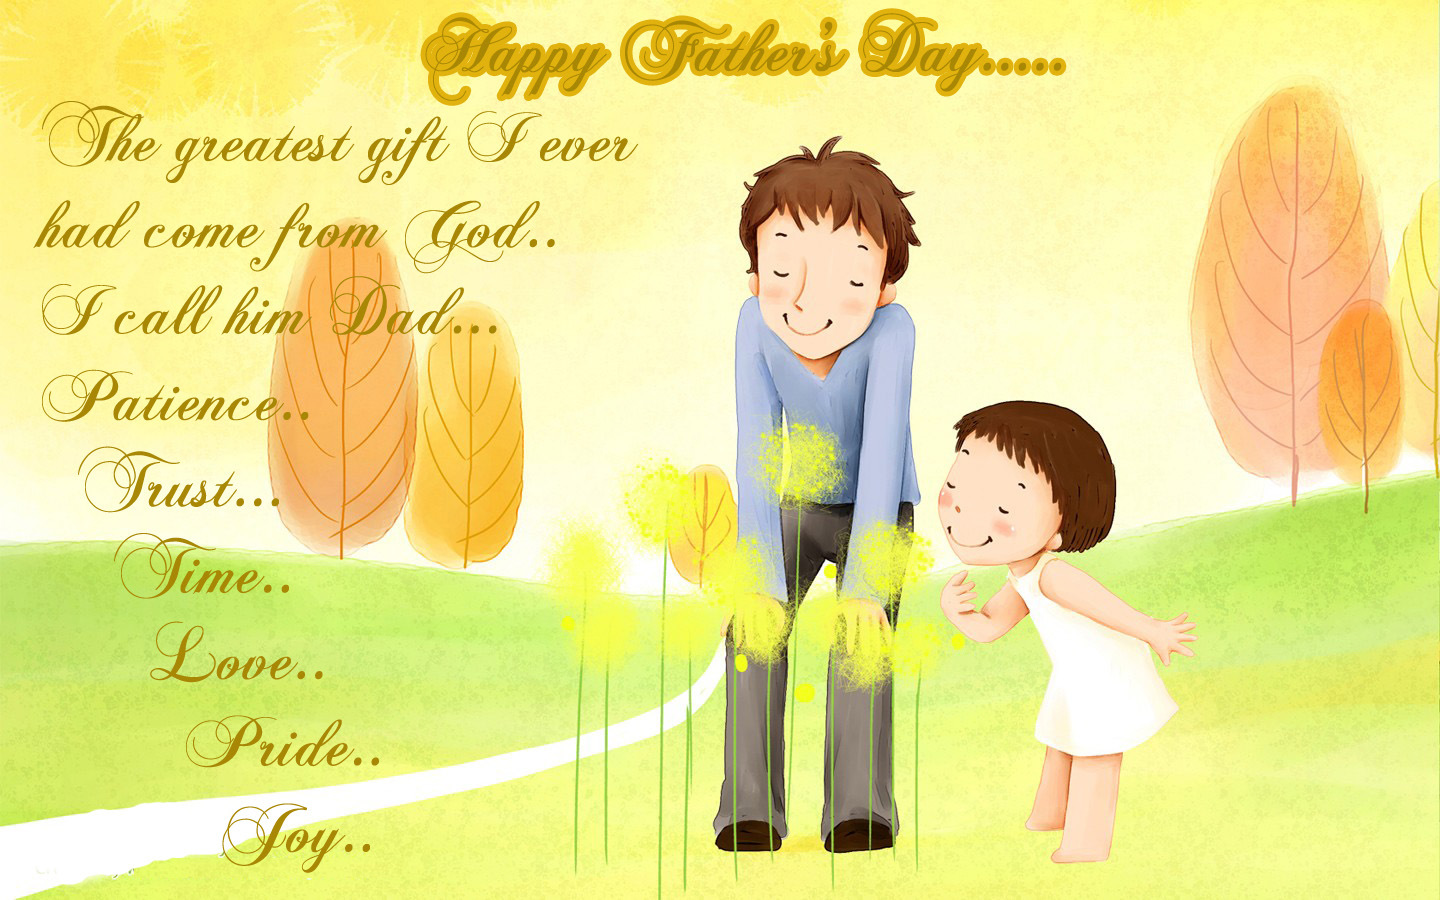 Fathers Day Greetings Quotes